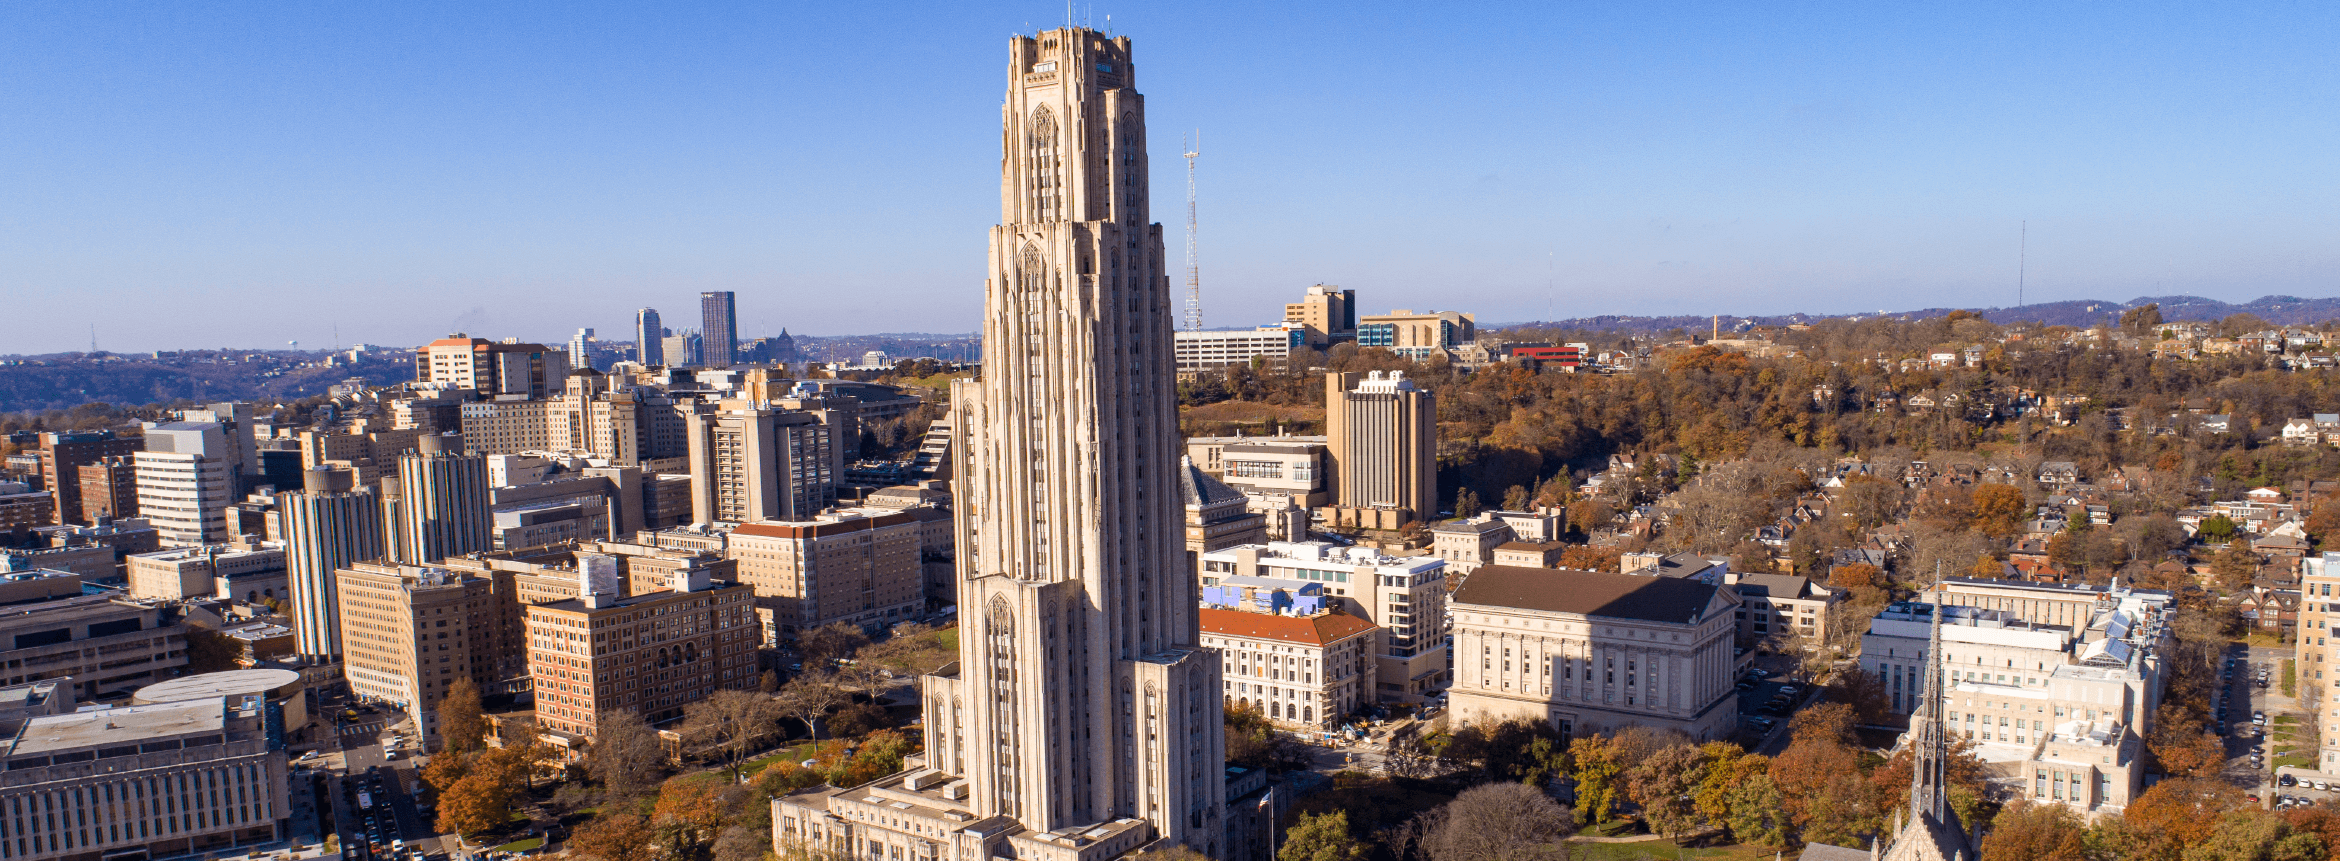 aerial view of oakland and the pittsburgh campus